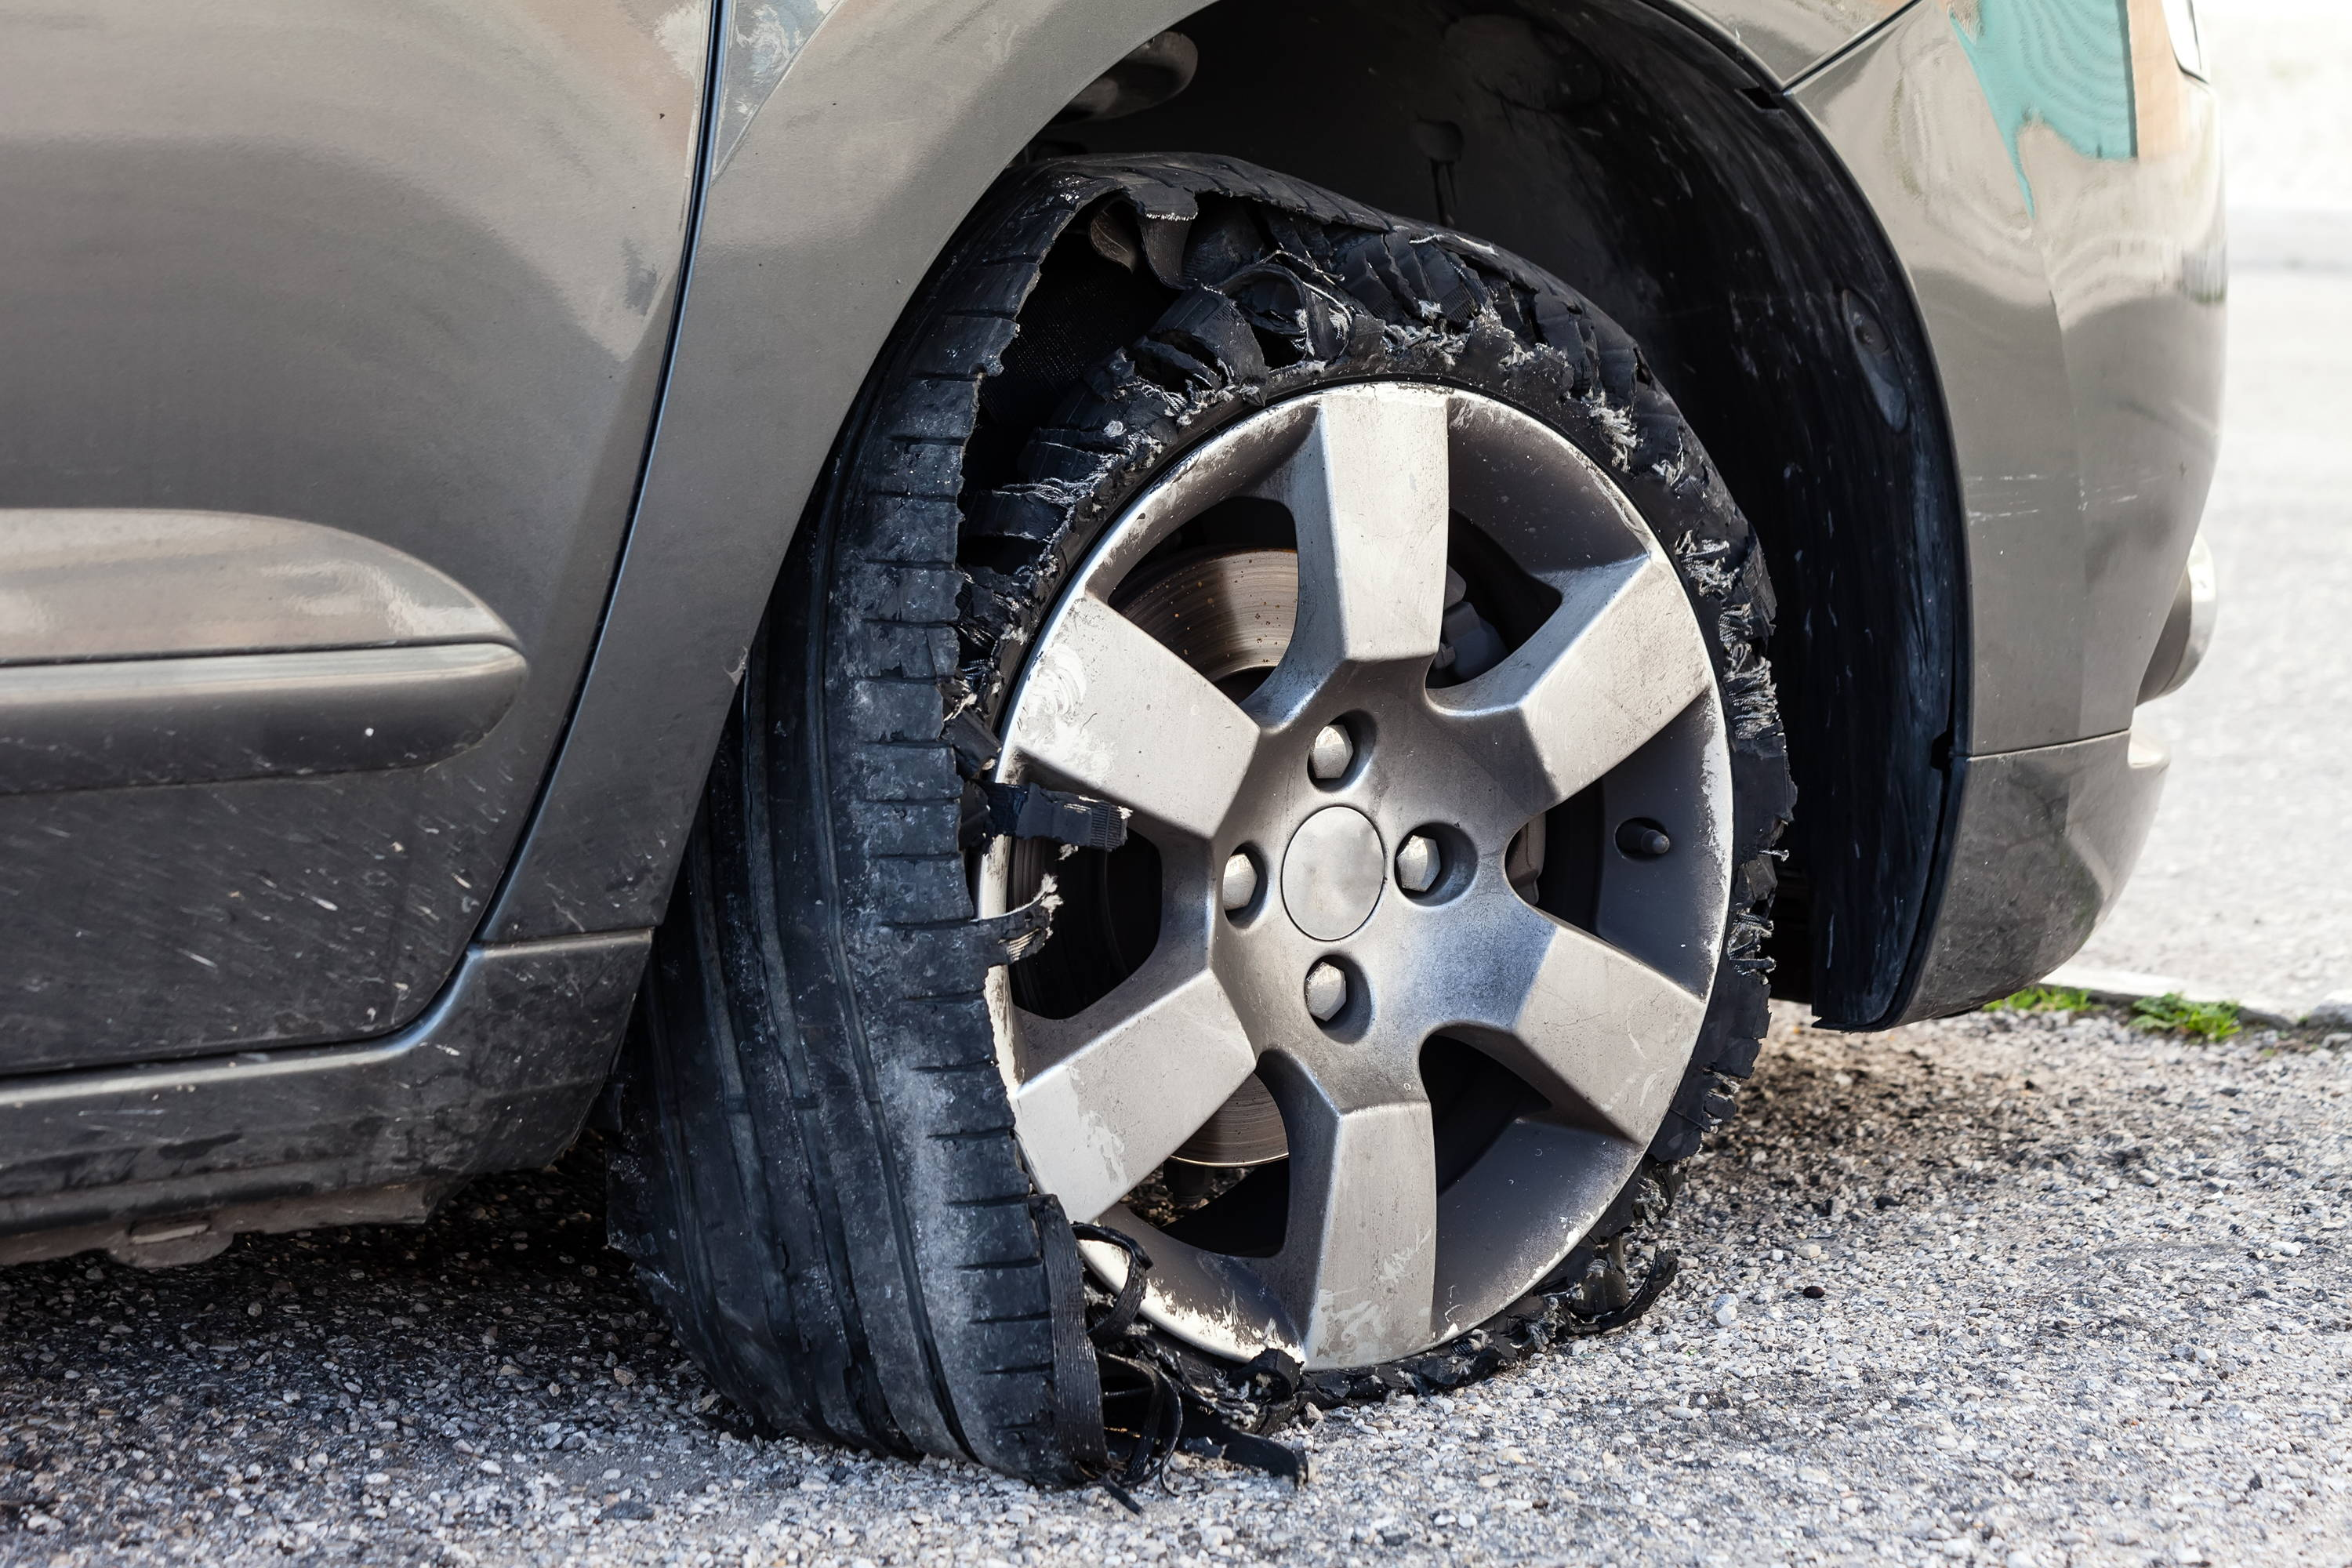 A tire blow out.